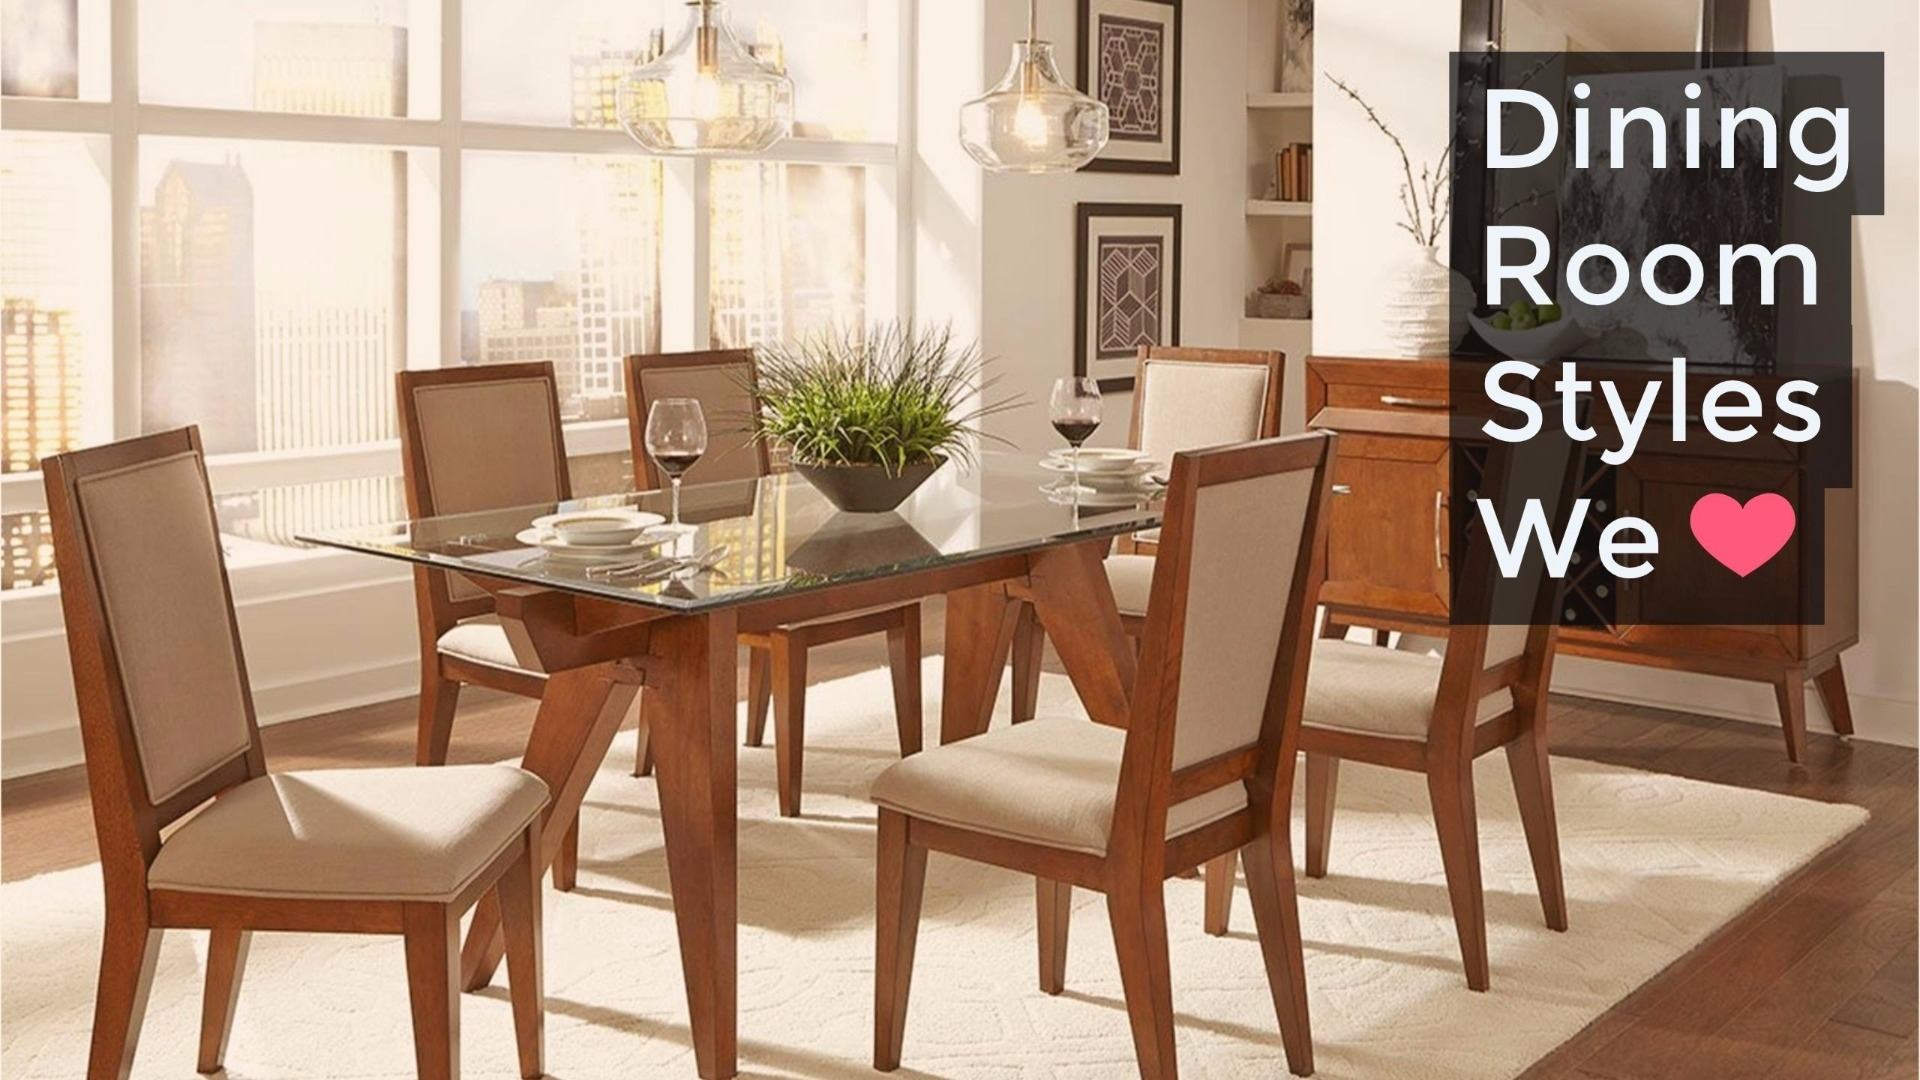 Dining Room Styles We Love | Weekends Only Furniture Within Best And Newest Cora 7 Piece Dining Sets (Image 11 of 20)